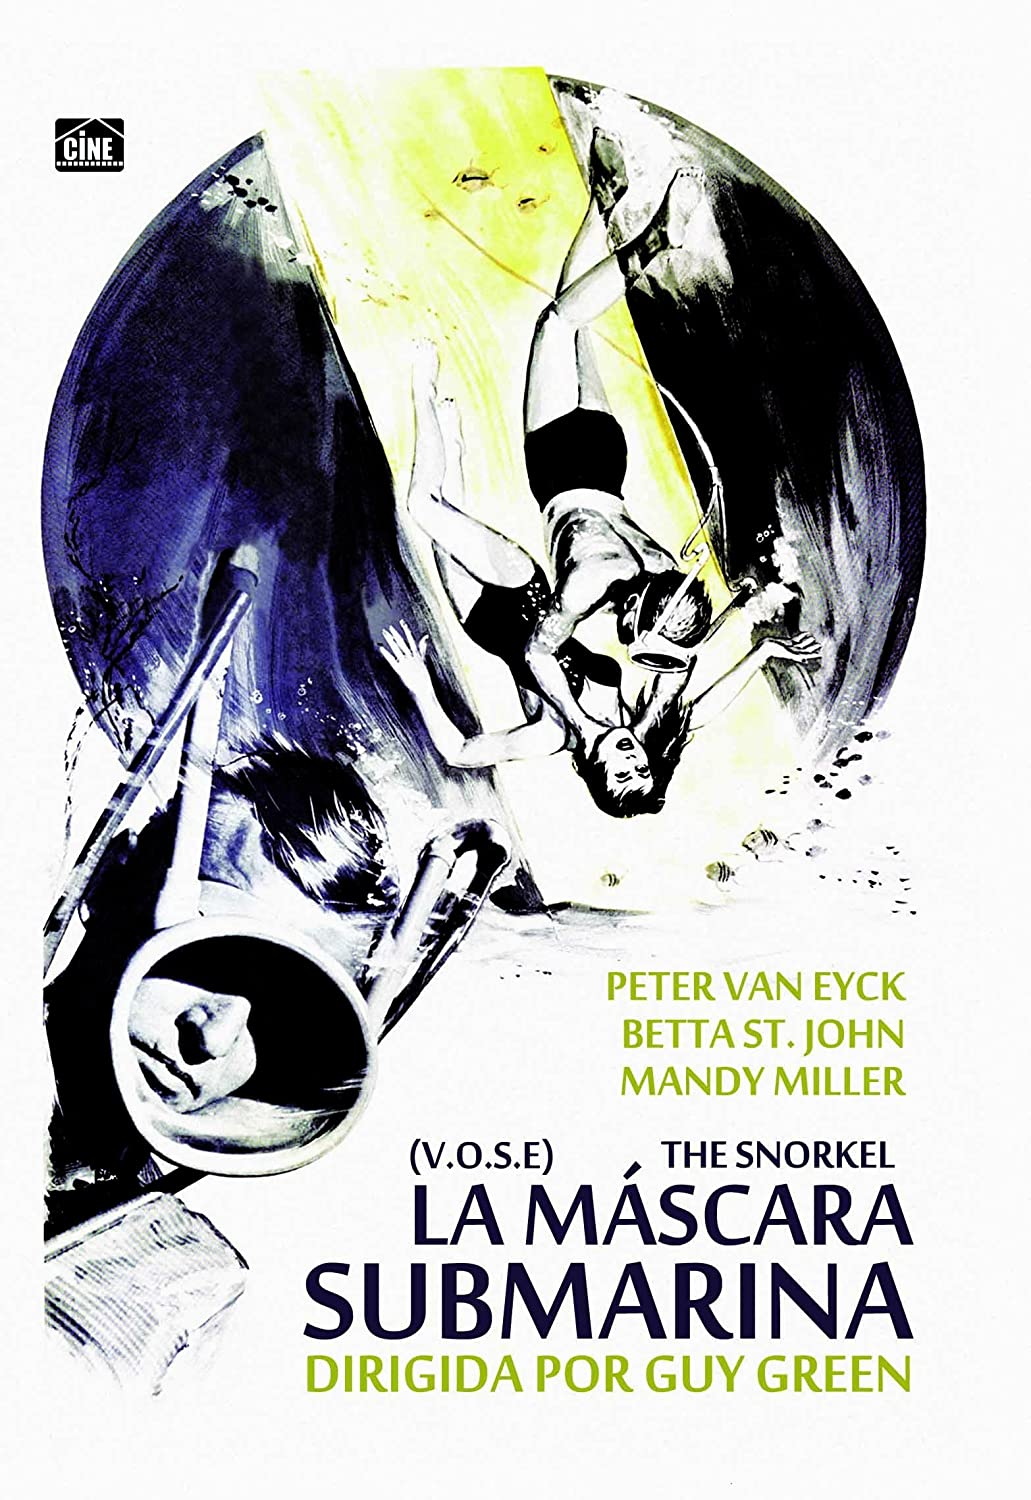 Amazon.com: La Máscara Submarina - The Snorkel [Non-usa Format: Pal -Import- Spain ]: Betta St. John, Mandy Miller Peter van Eyck: Movies & TV